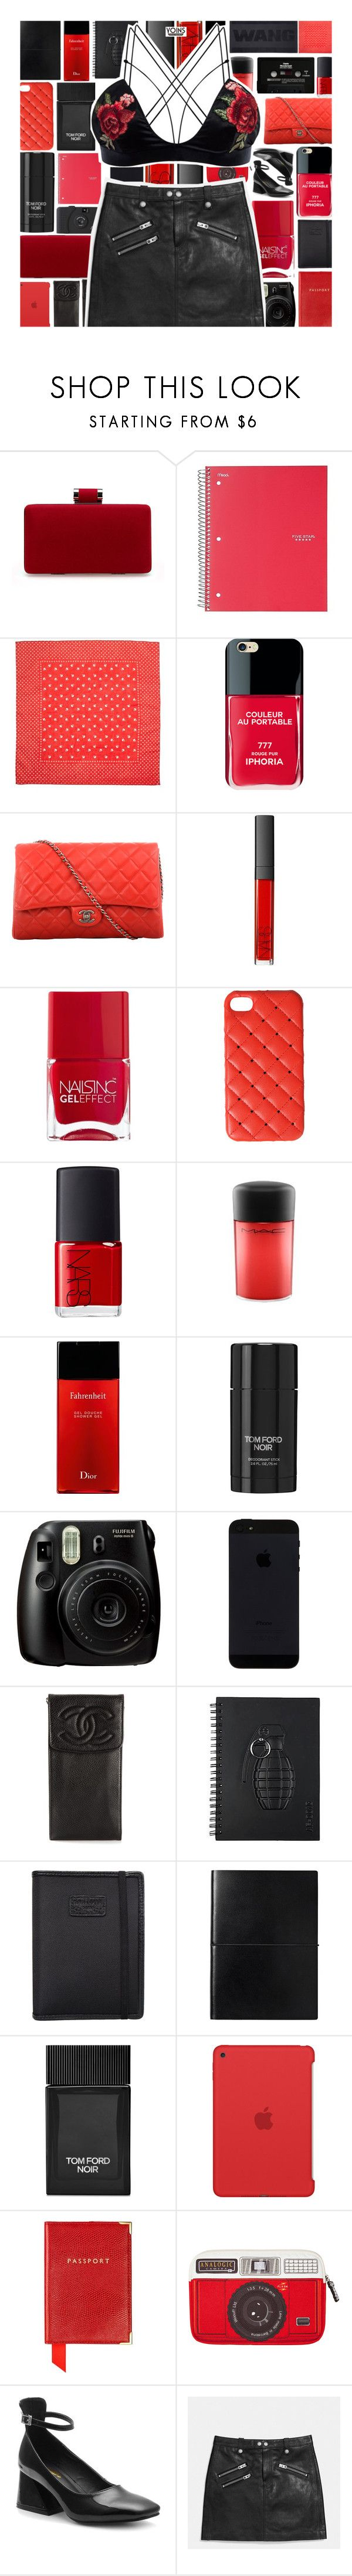 """""""YOINS"""" by xgracieeee ❤ liked on Polyvore featuring Five Star, Madewell, Iphoria, Chanel, NARS Cosmetics, Nails Inc., 2Me Style, MAC Cosmetics, Christian Dior and Tom Ford"""